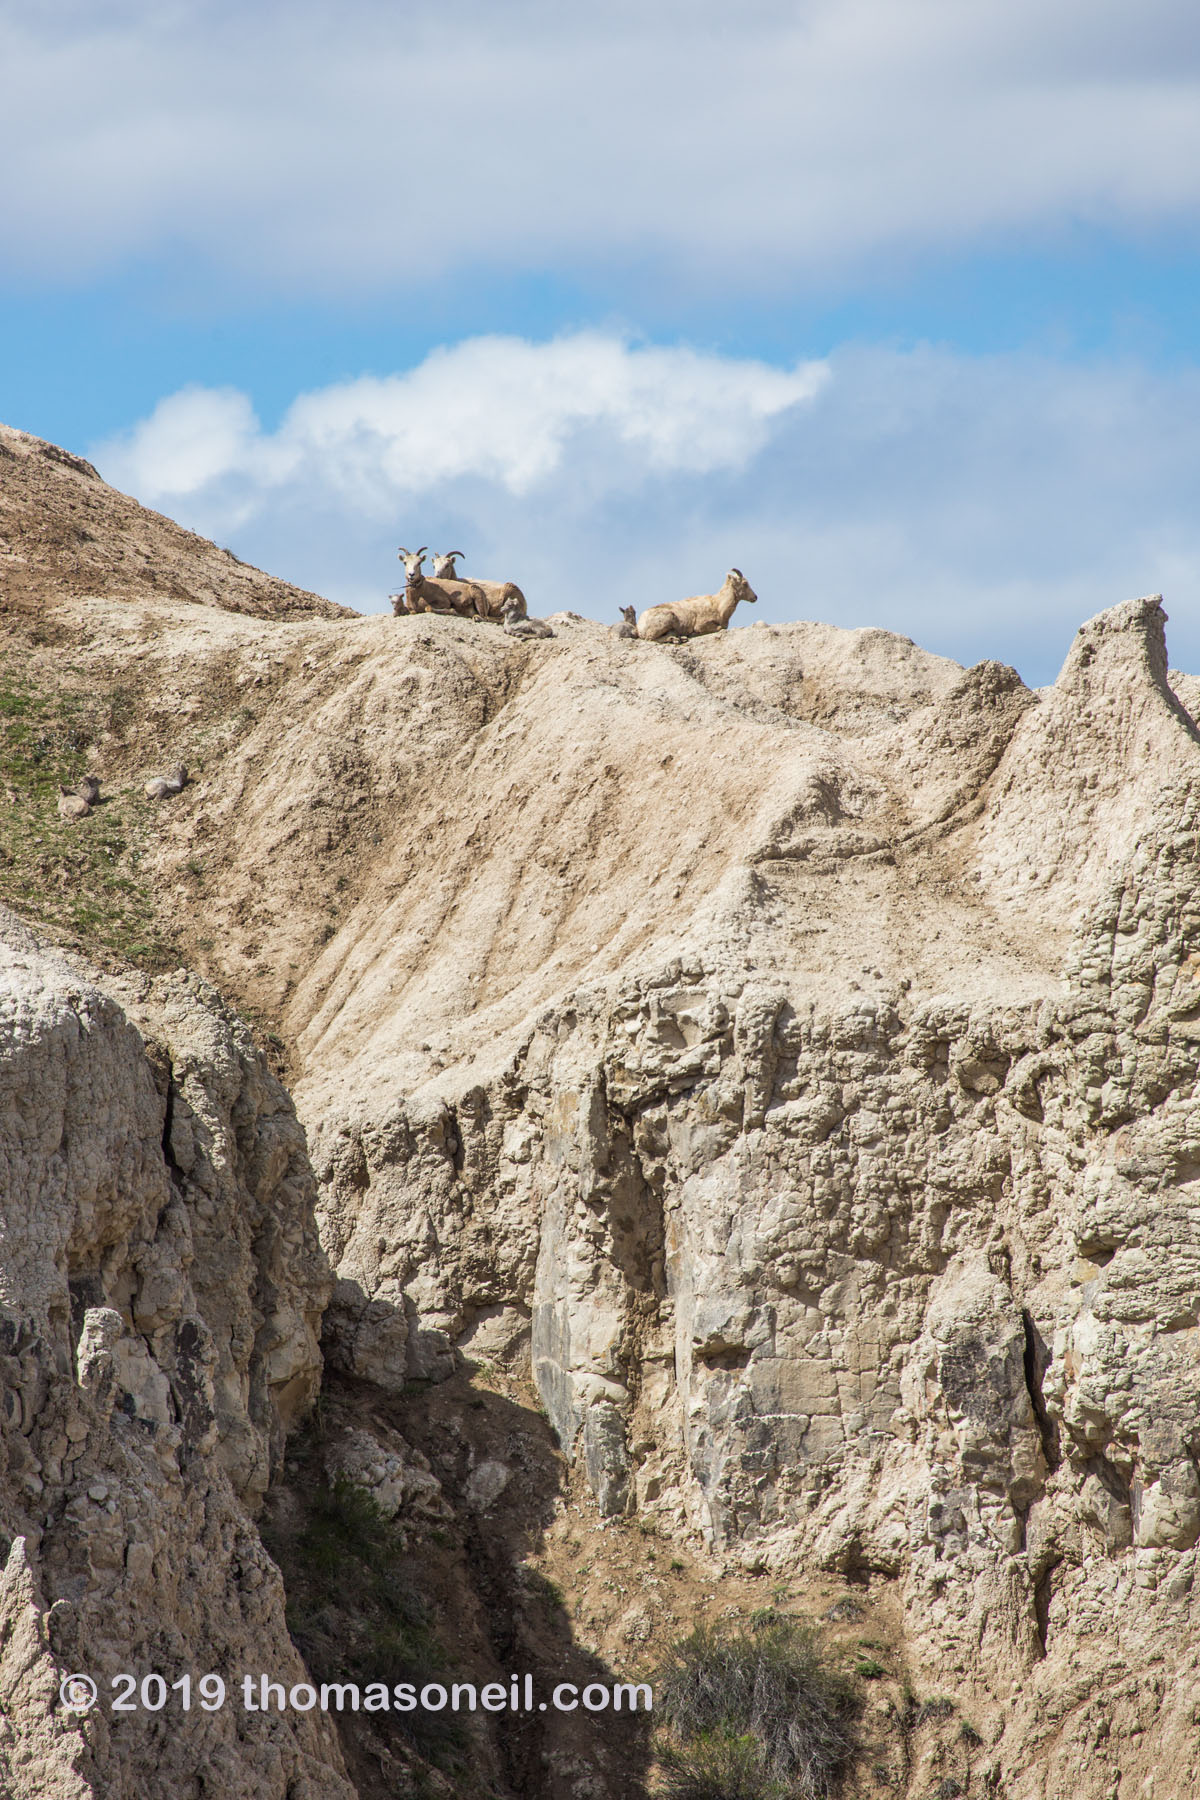 Bighorns on the peak above Ancient Hunters Overlook, Badlands National Park, May 2019.  There are three ewes and three lambs in this image.  Click for next photo.